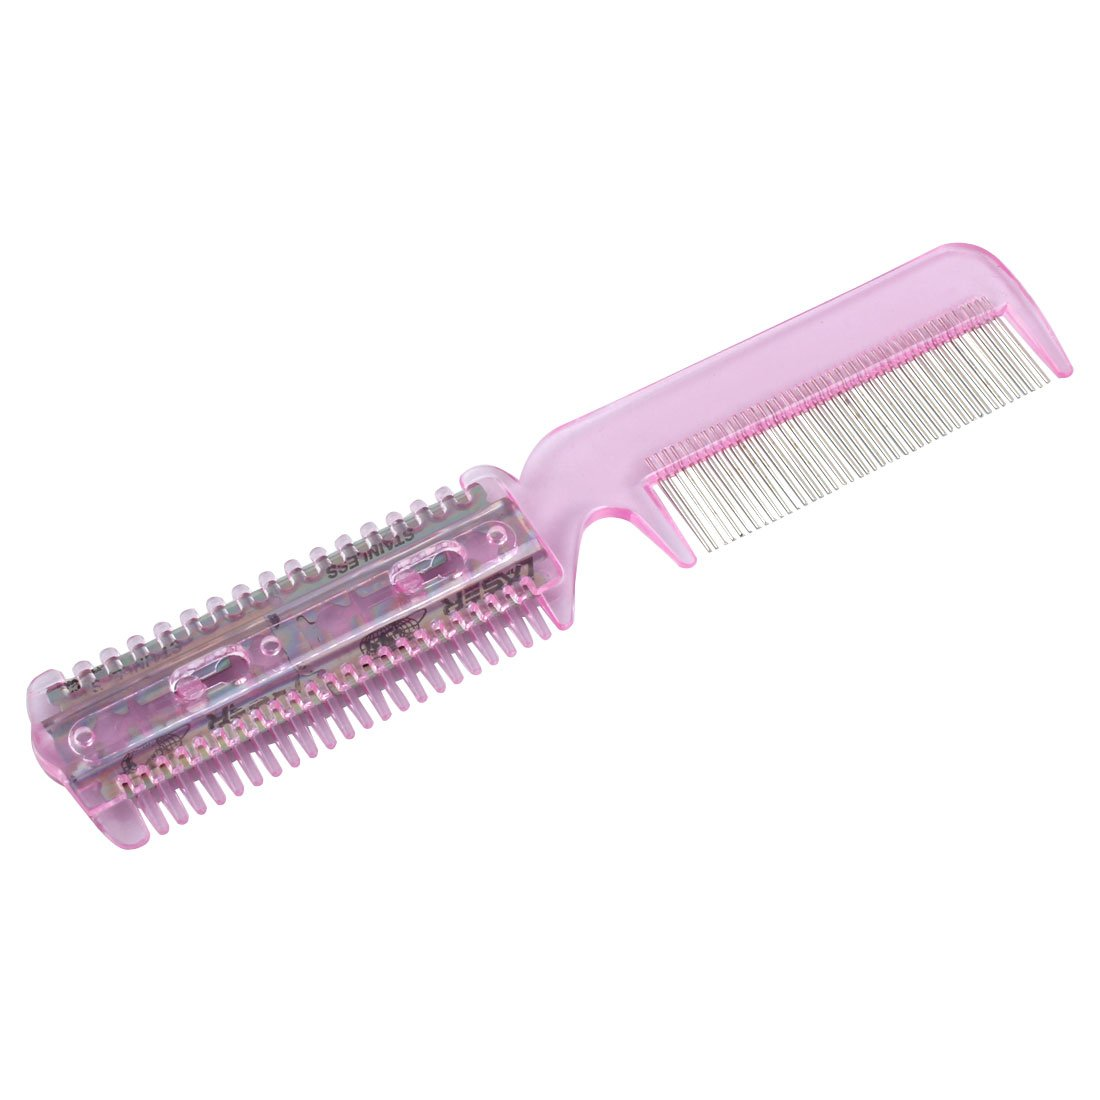 uxcell Pink Home Plastic Comb with Hair Cutting Trimmer Razor a09022500ux0116